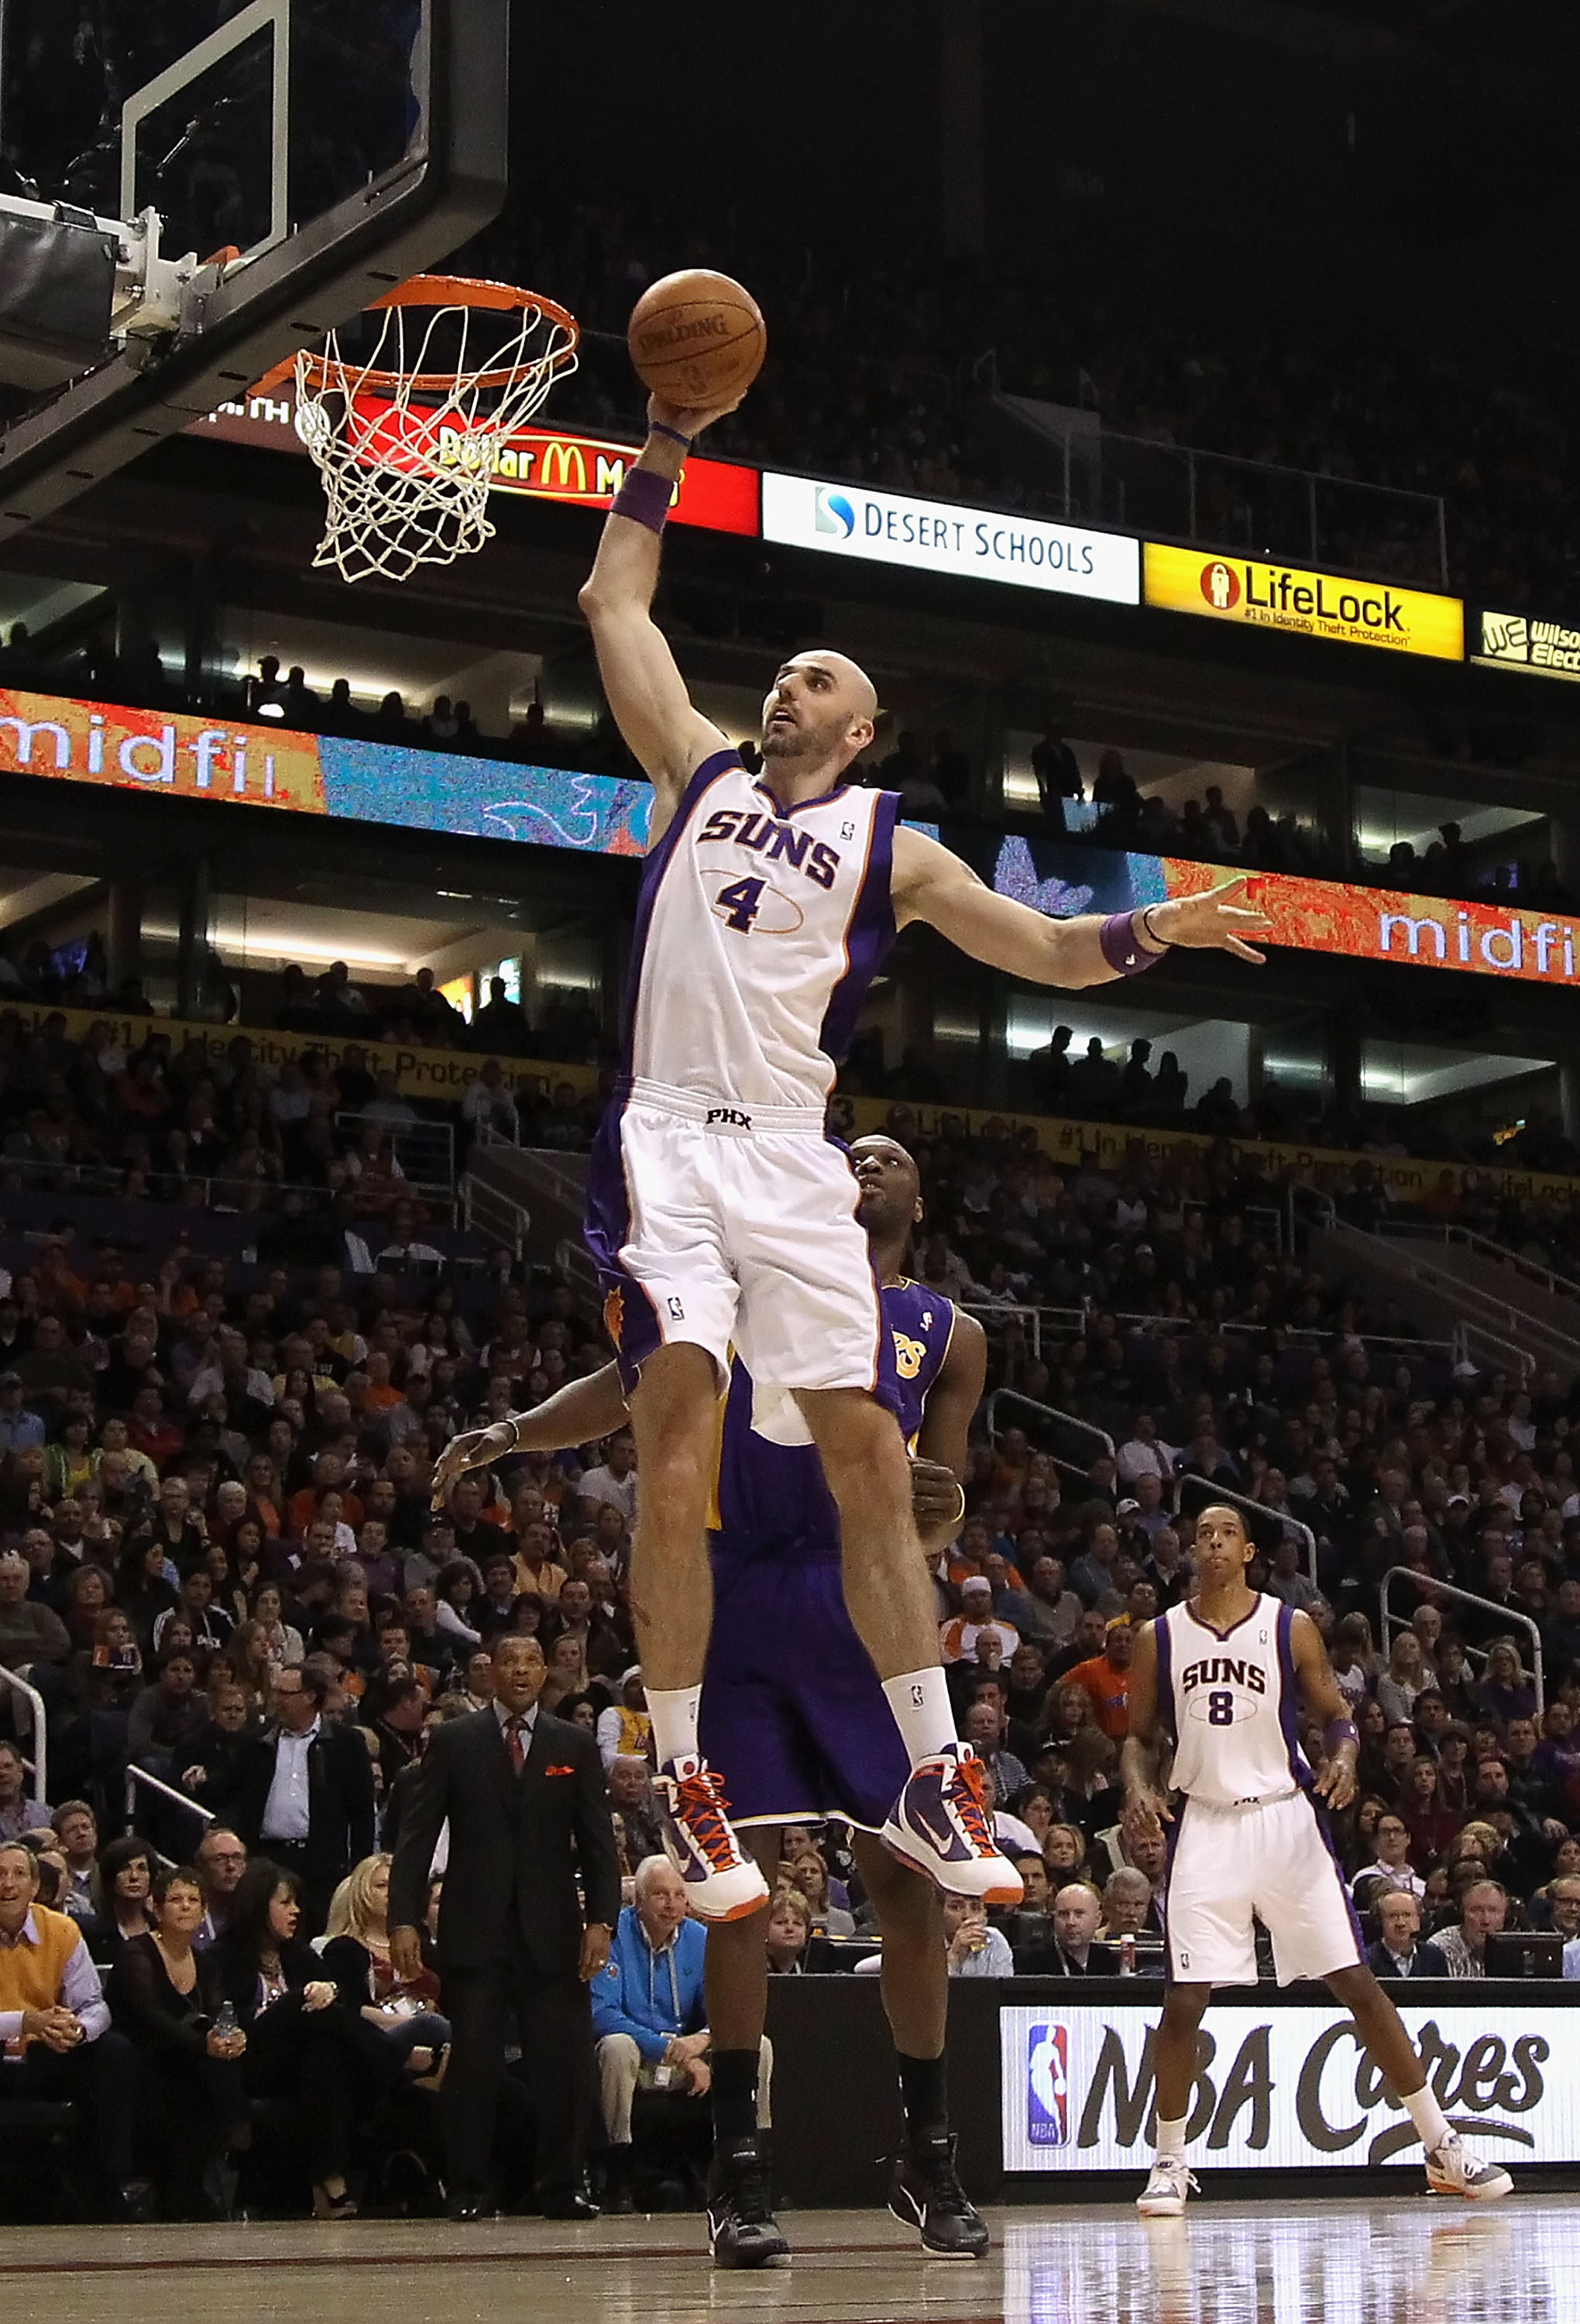 PHOENIX, AZ - JANUARY 05:  Marcin Gortat #4 of the Phoenix Suns slam dunks the ball during the NBA game against the Los Angeles Lakers at US Airways Center on January 5, 2011 in Phoenix, Arizona. The Lakers defeated the Suns 99-95.  NOTE TO USER: User exp